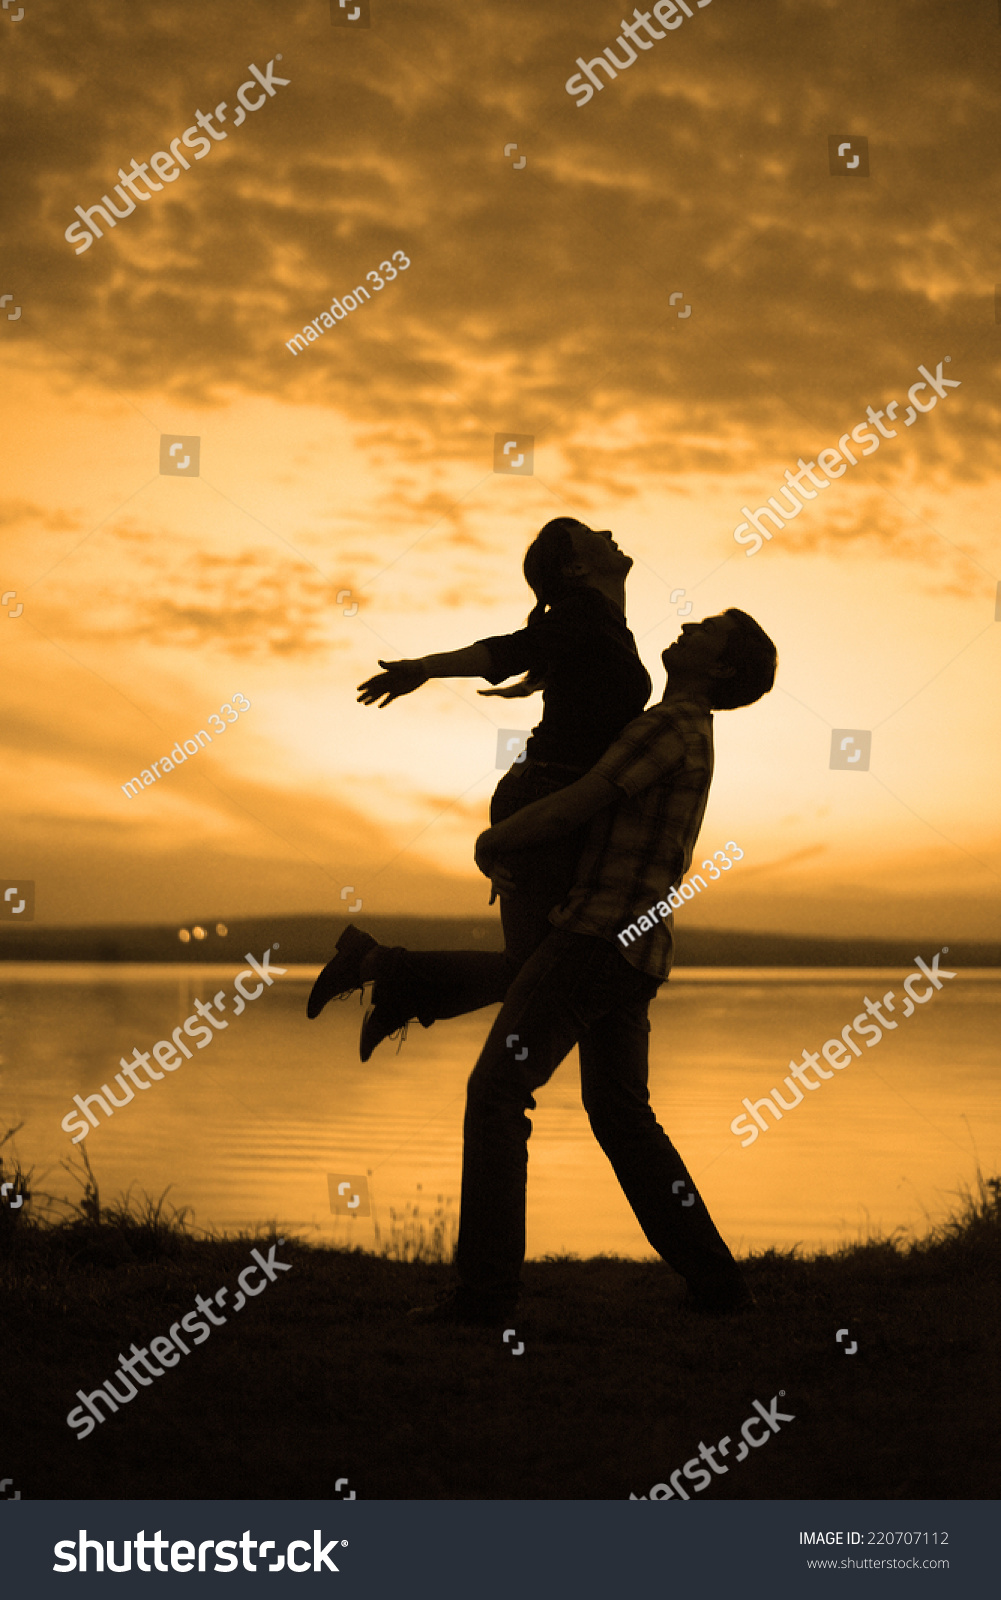 silhouette of couple man and woman jumping up holding hands and body against sunset sky with